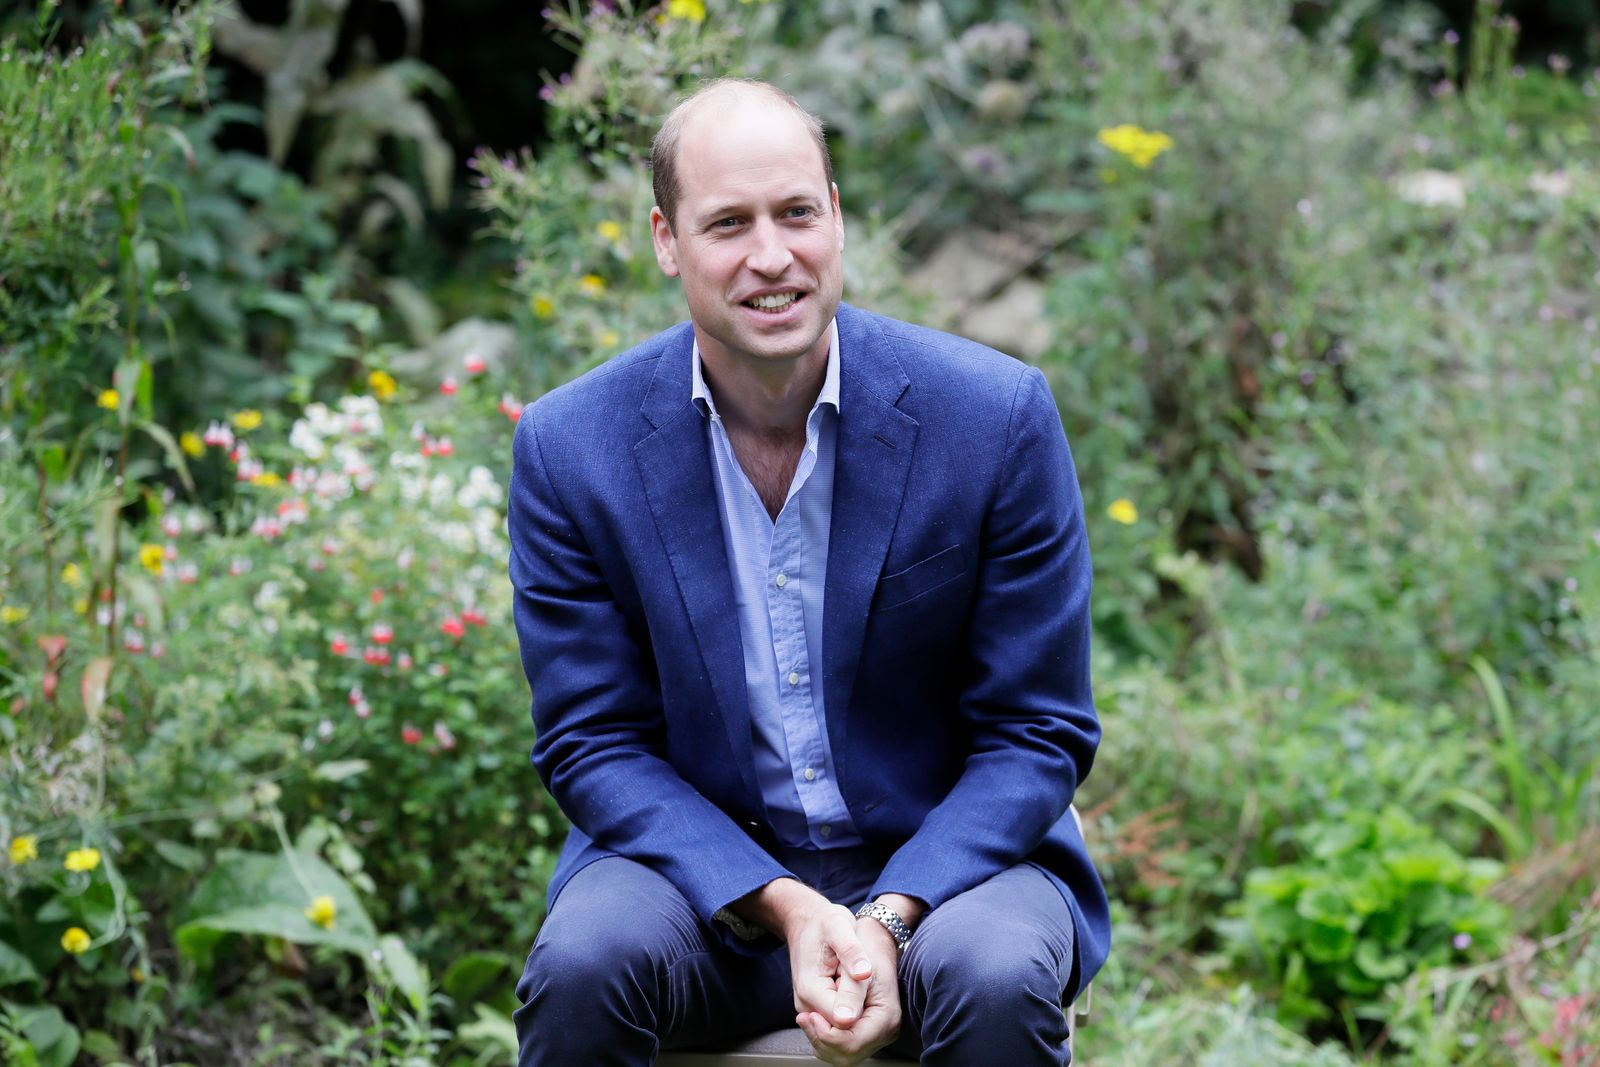 Prince William, Duke of Cambridge speaks during a visit to the Garden House part of the Light Project on July 16, 2020 | Getty Images